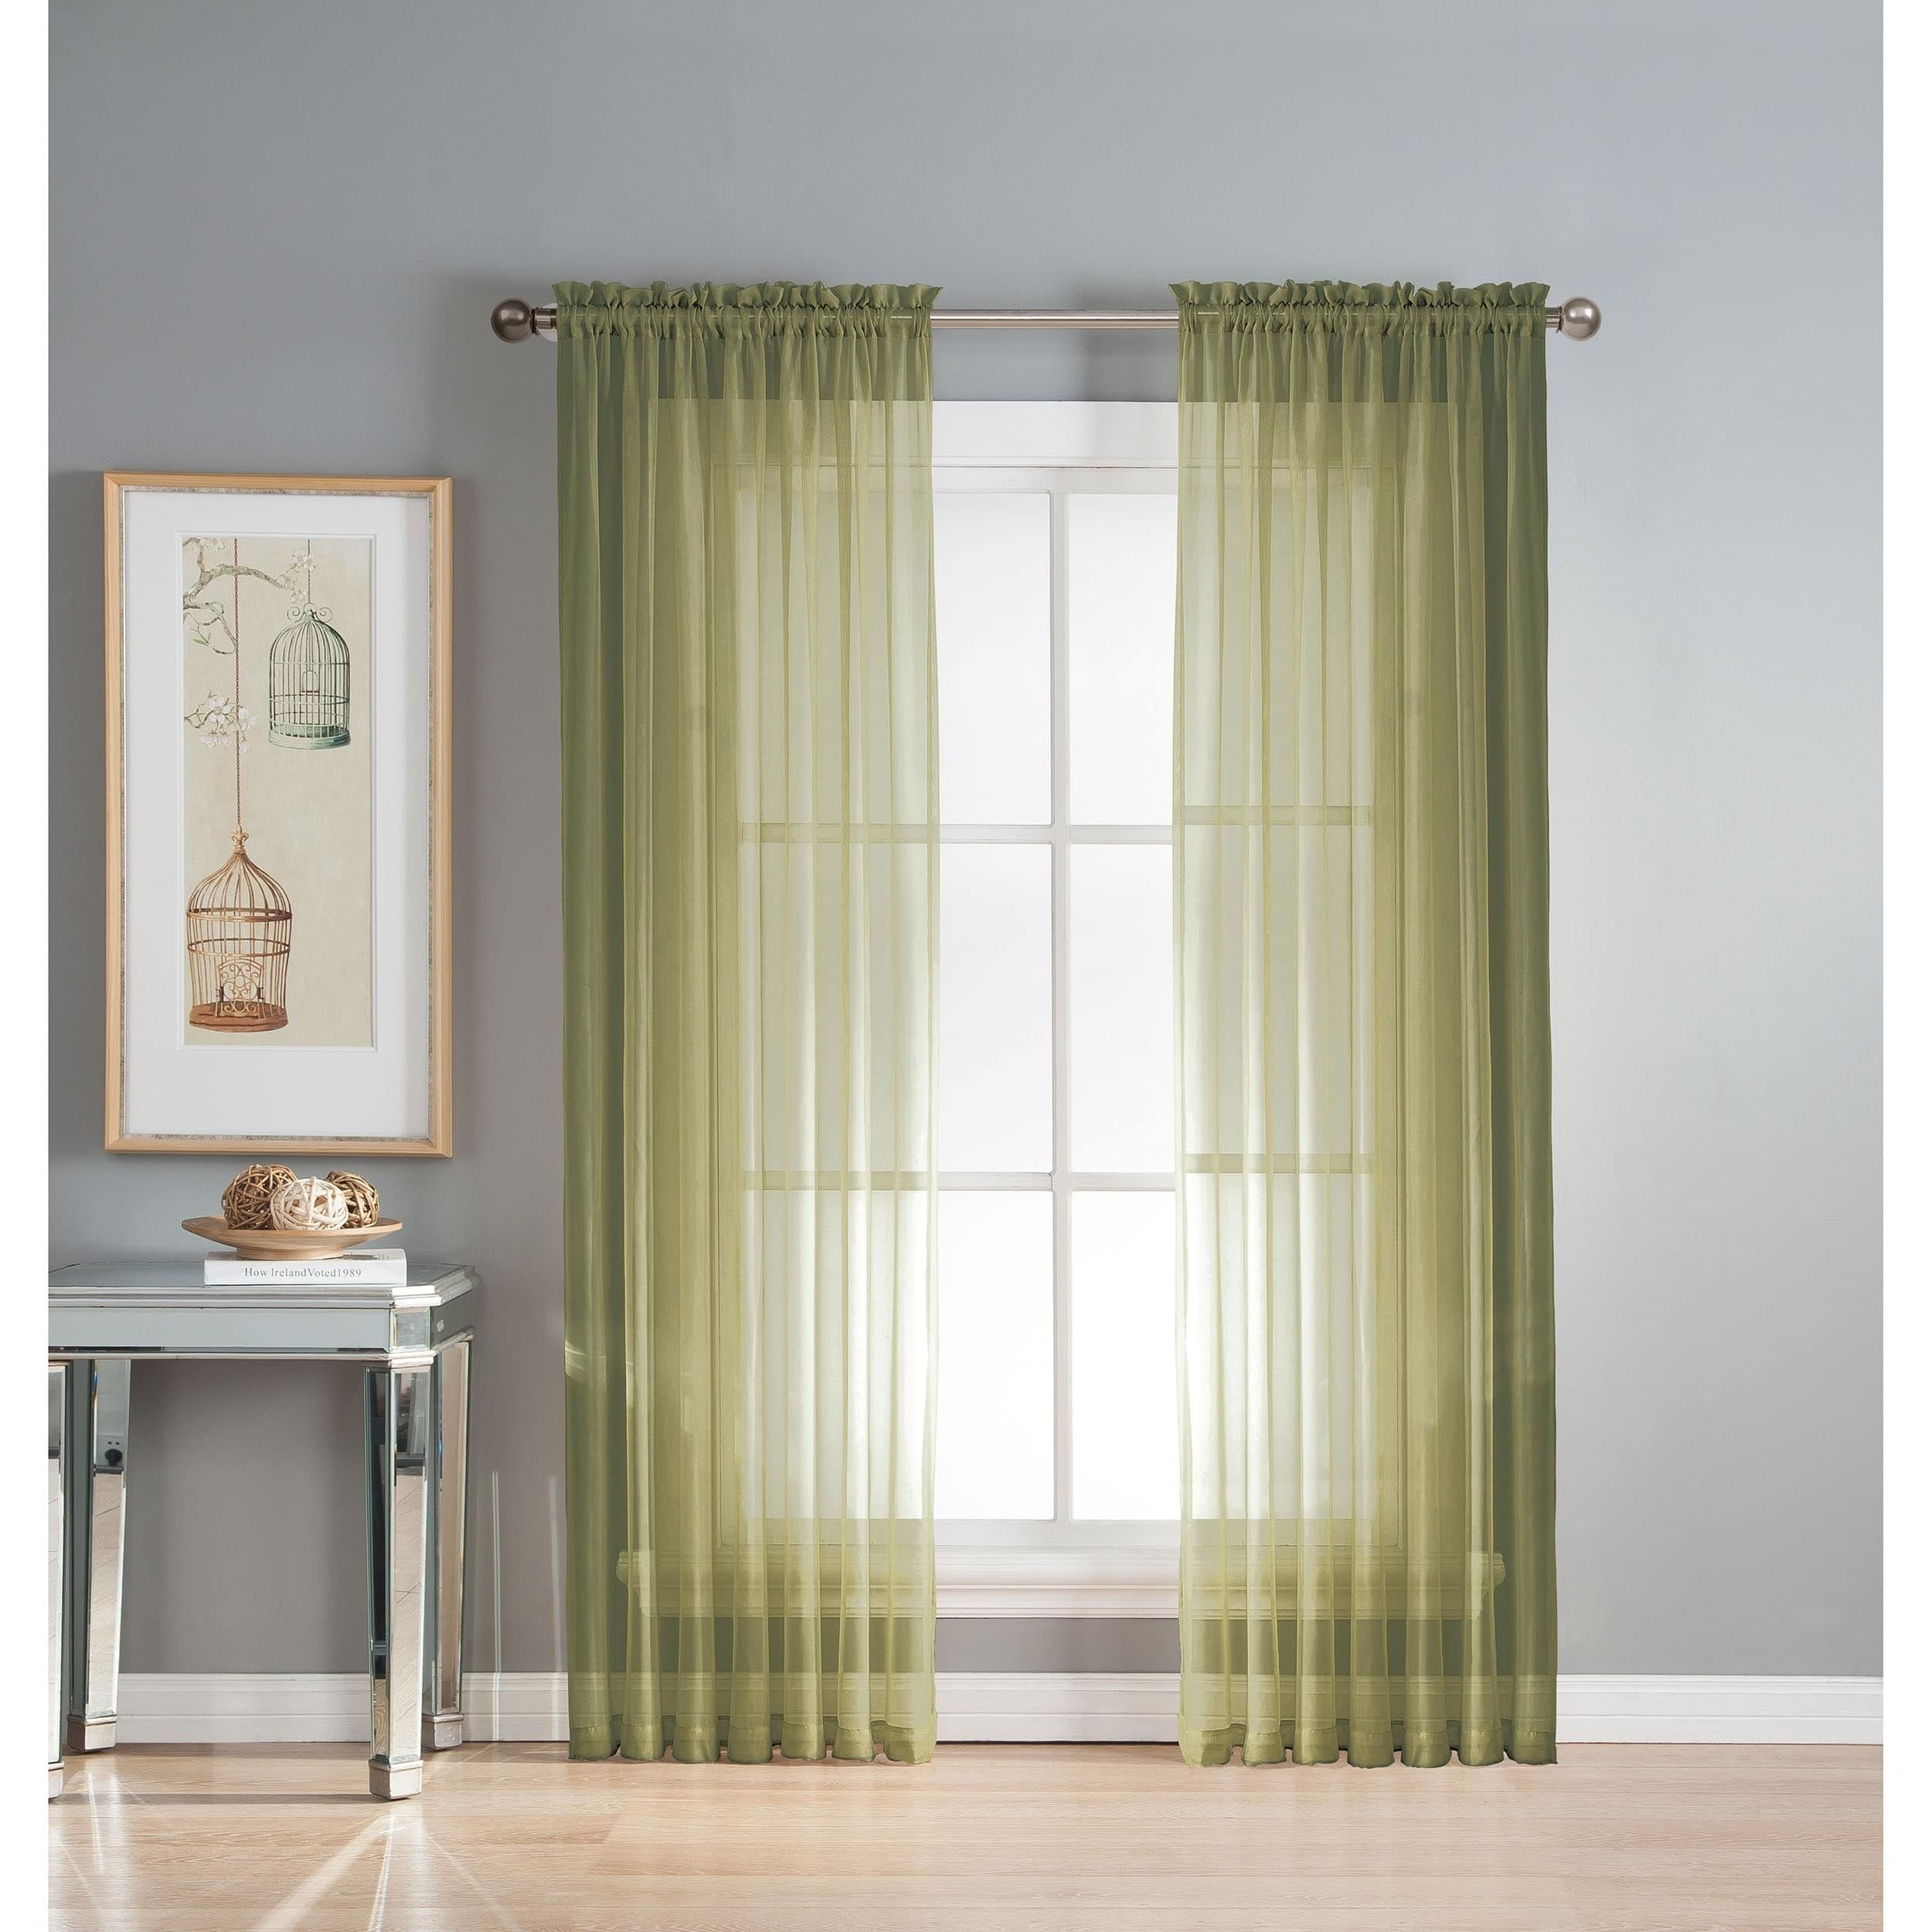 Curtis Sheer Voile Extra Wide Rod Pocket Curtain Panel Pair